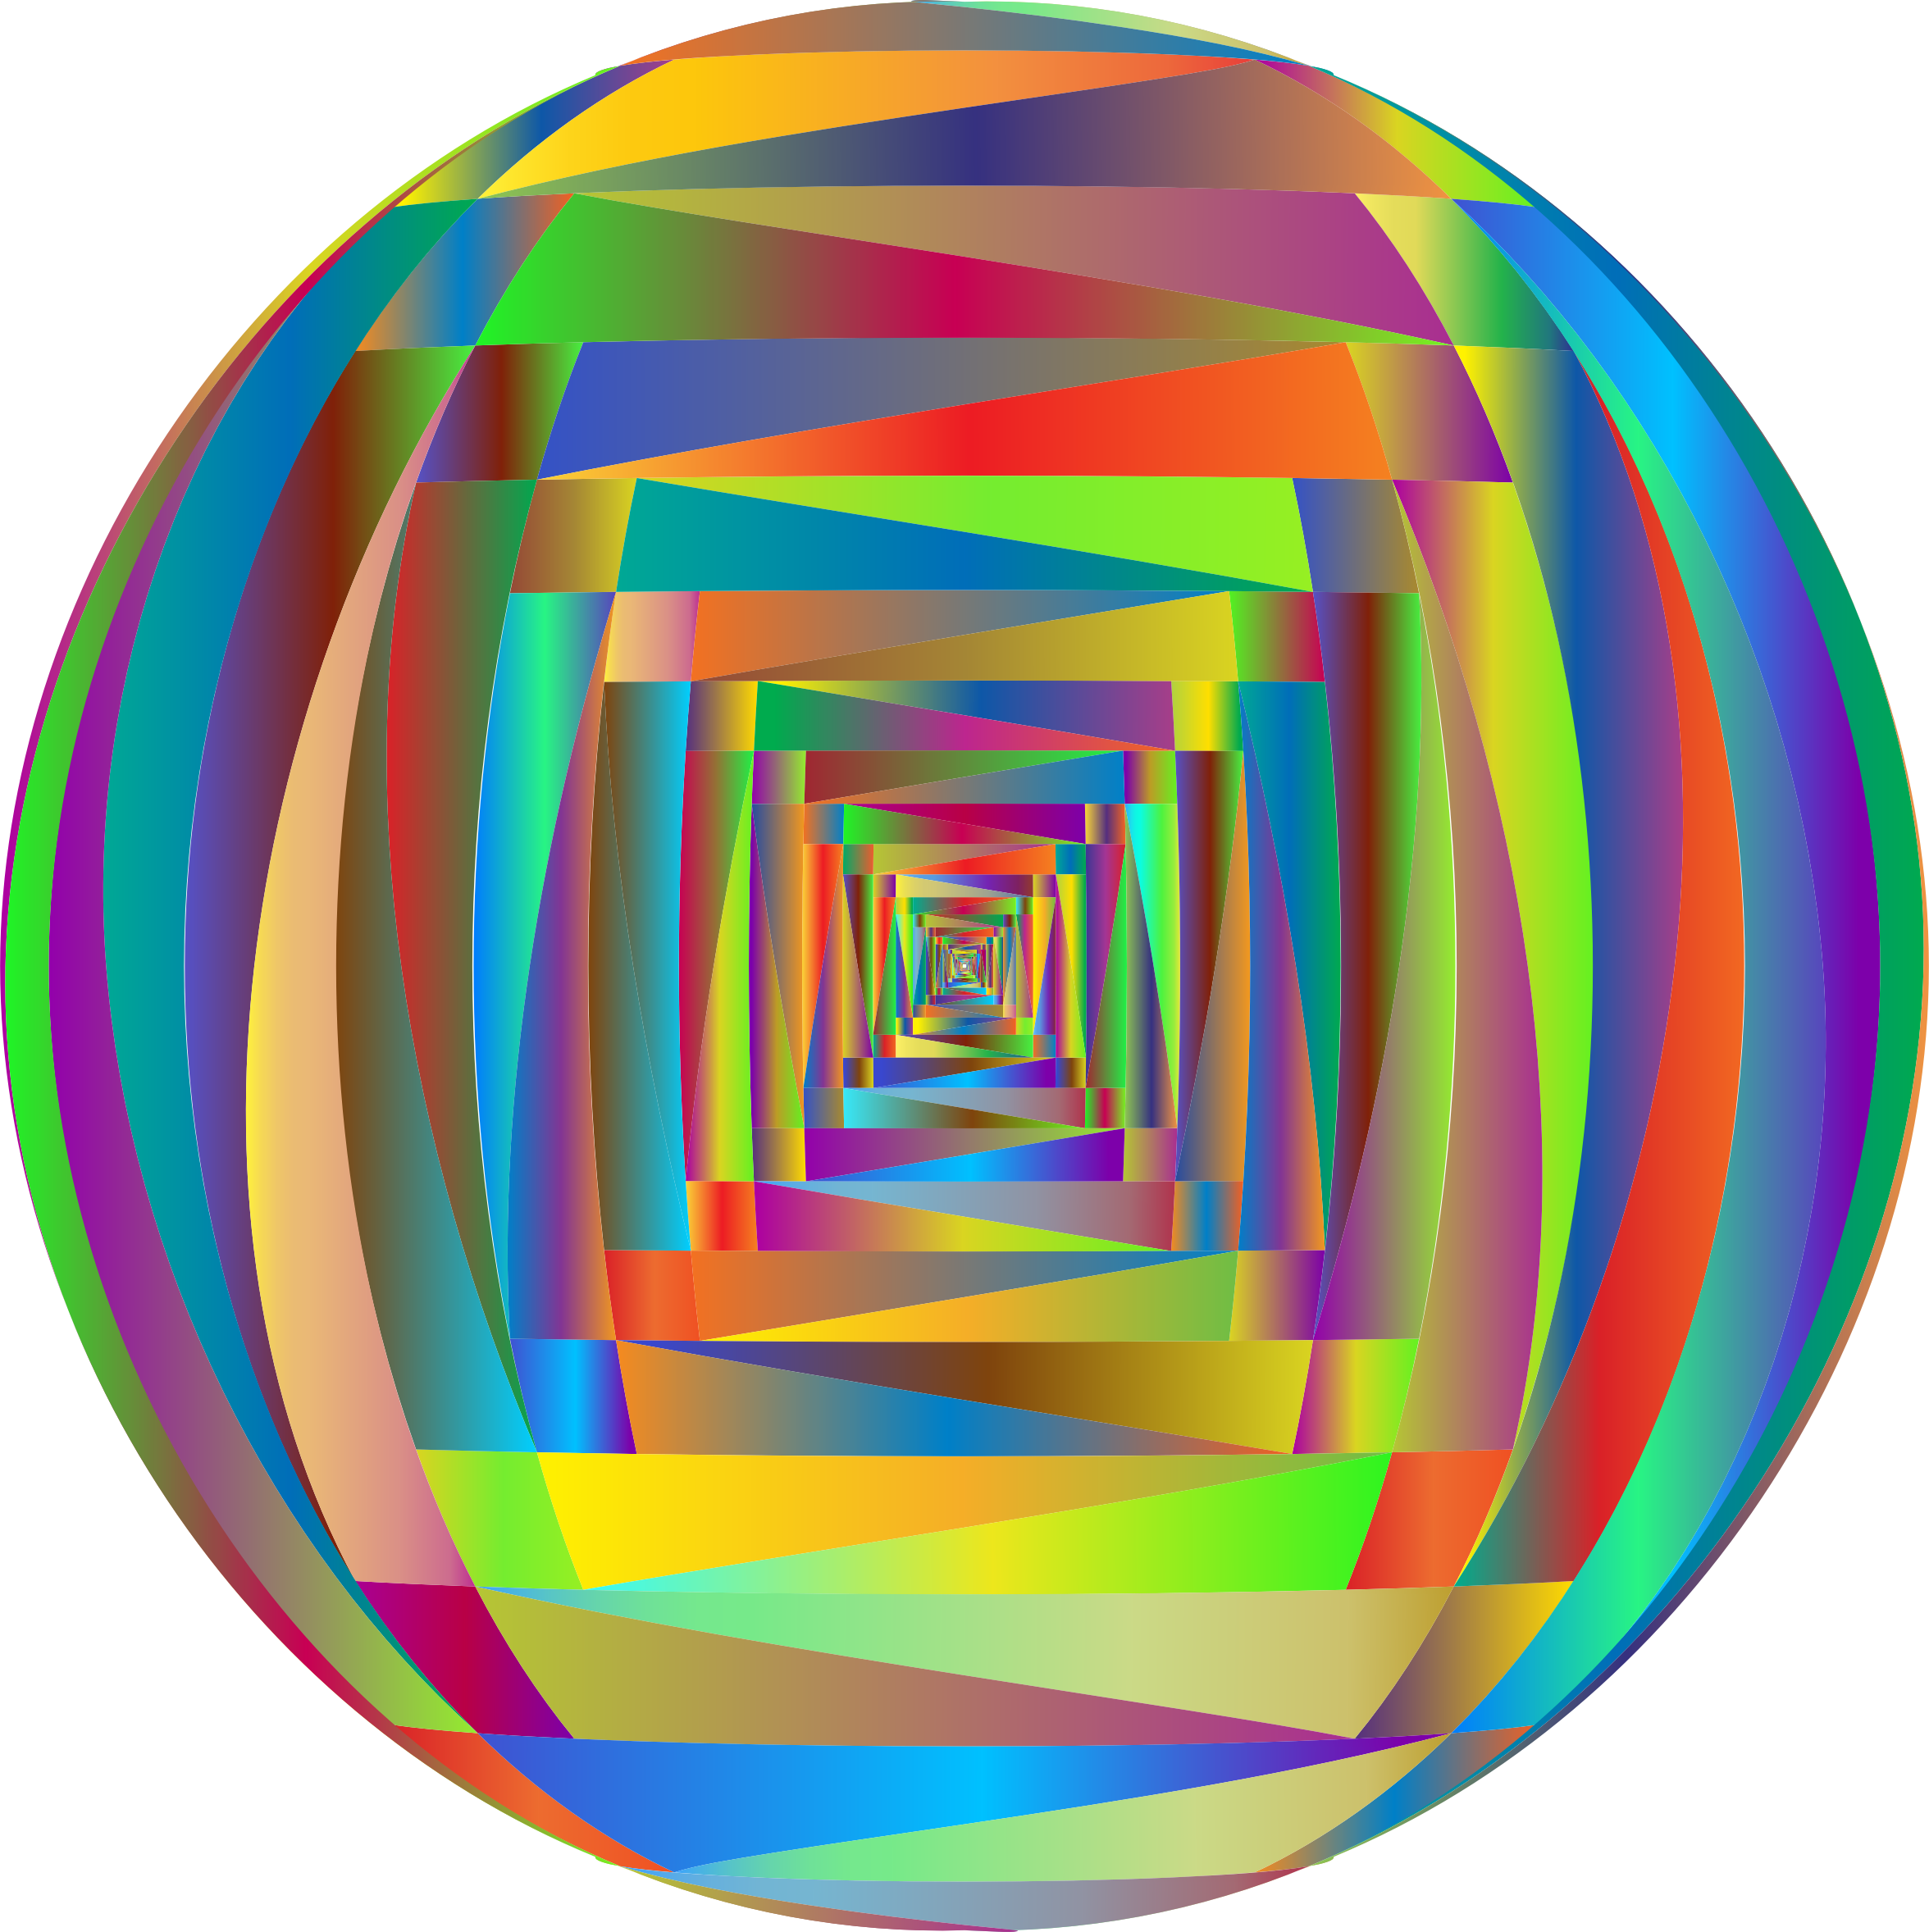 Abstract Polygonal Orb 2 by GDJ